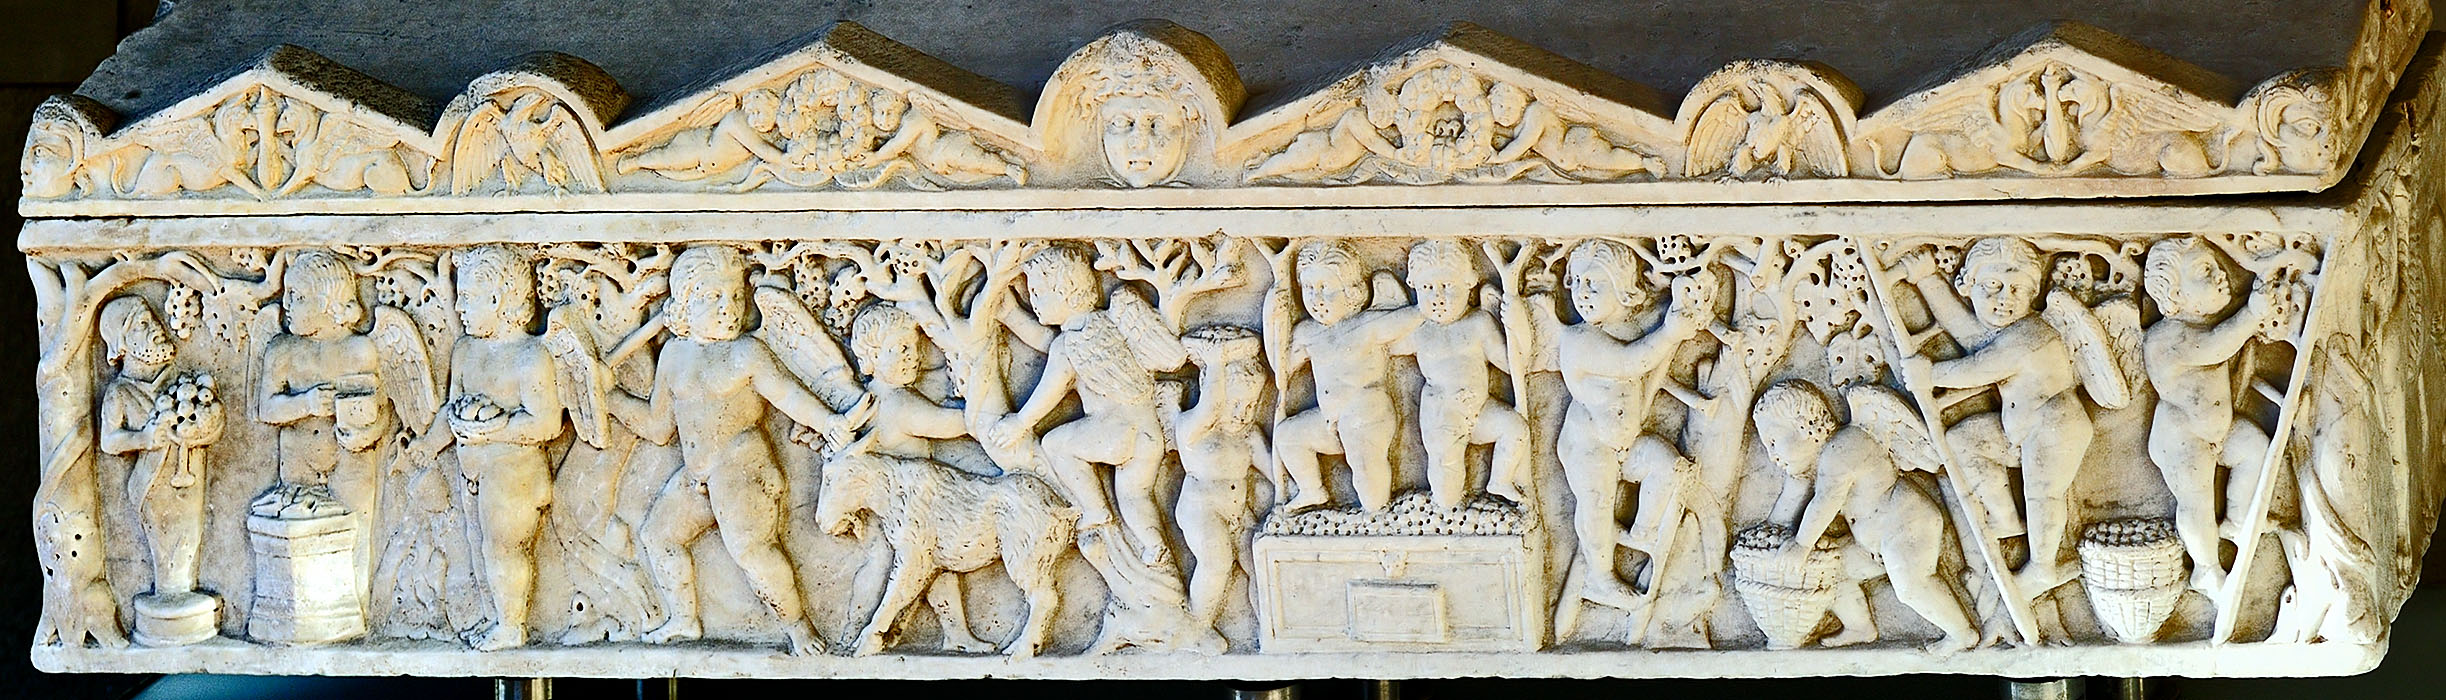 A sarcophagus of a child with vintage scenes. Luni (Carrara) marble. 2nd century CE. Rome, National Museum of Palazzo Venezia